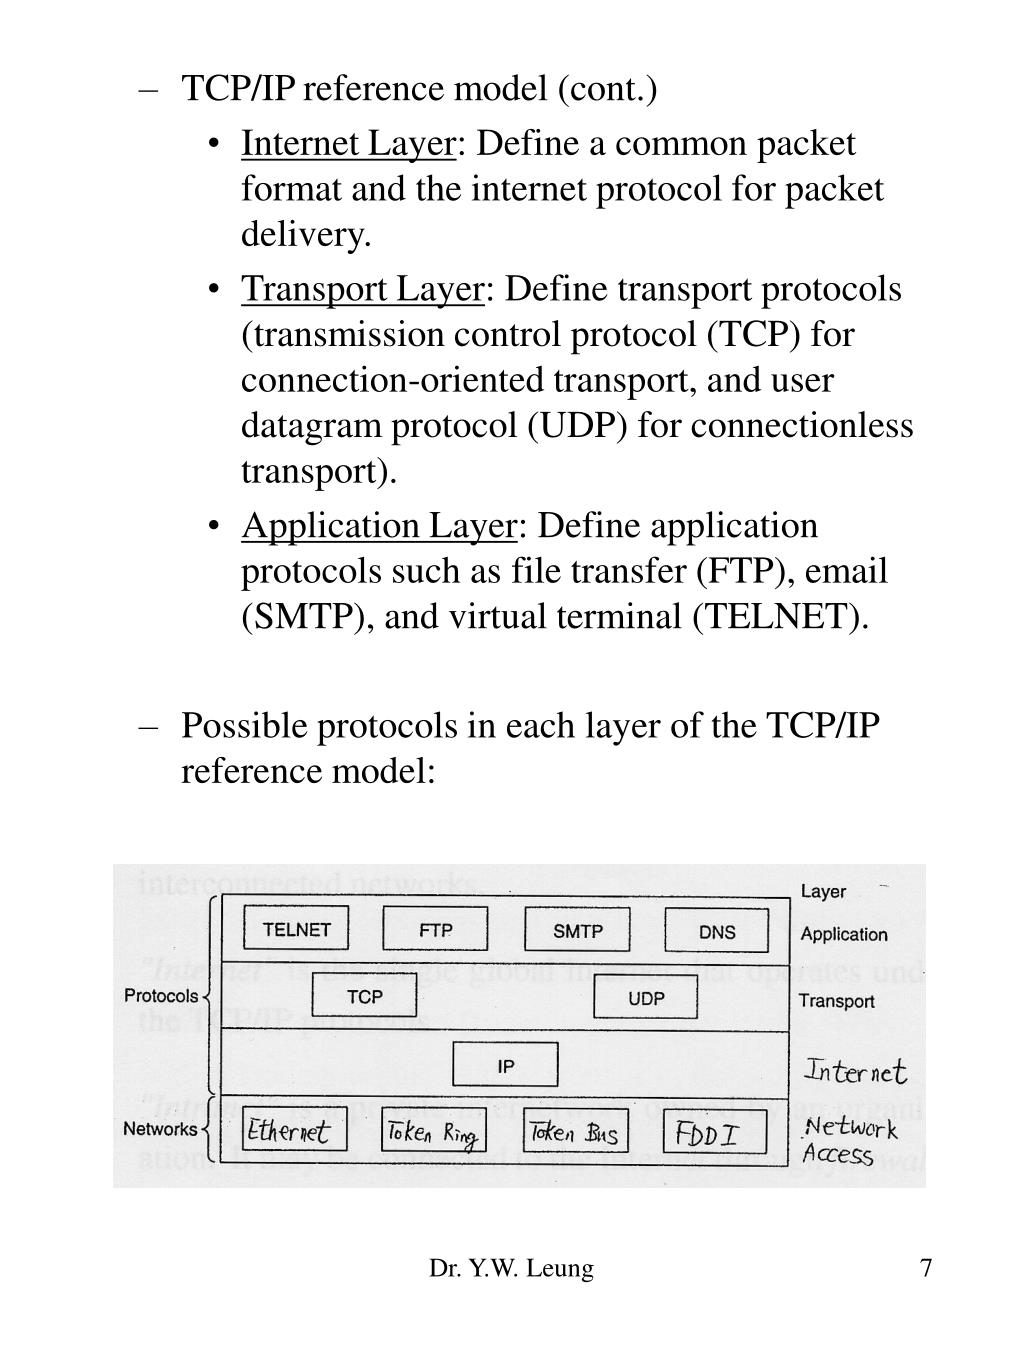 TCP/IP reference model (cont.)